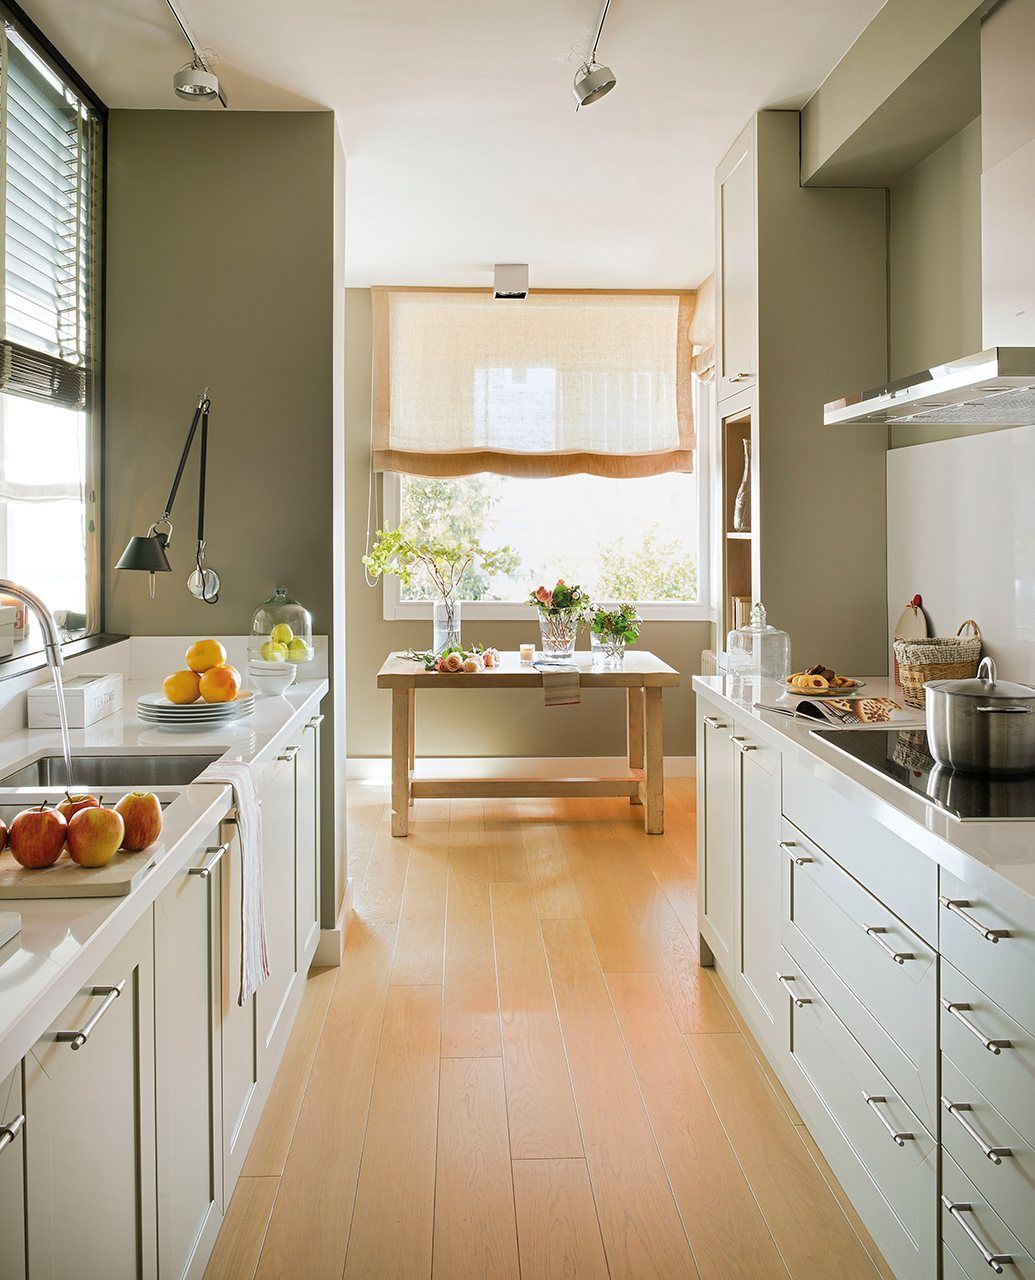 20 Small Dining Room Ideas On A Budget: Kitchen Remodel Ideas (Multifunctional And Artsy Look